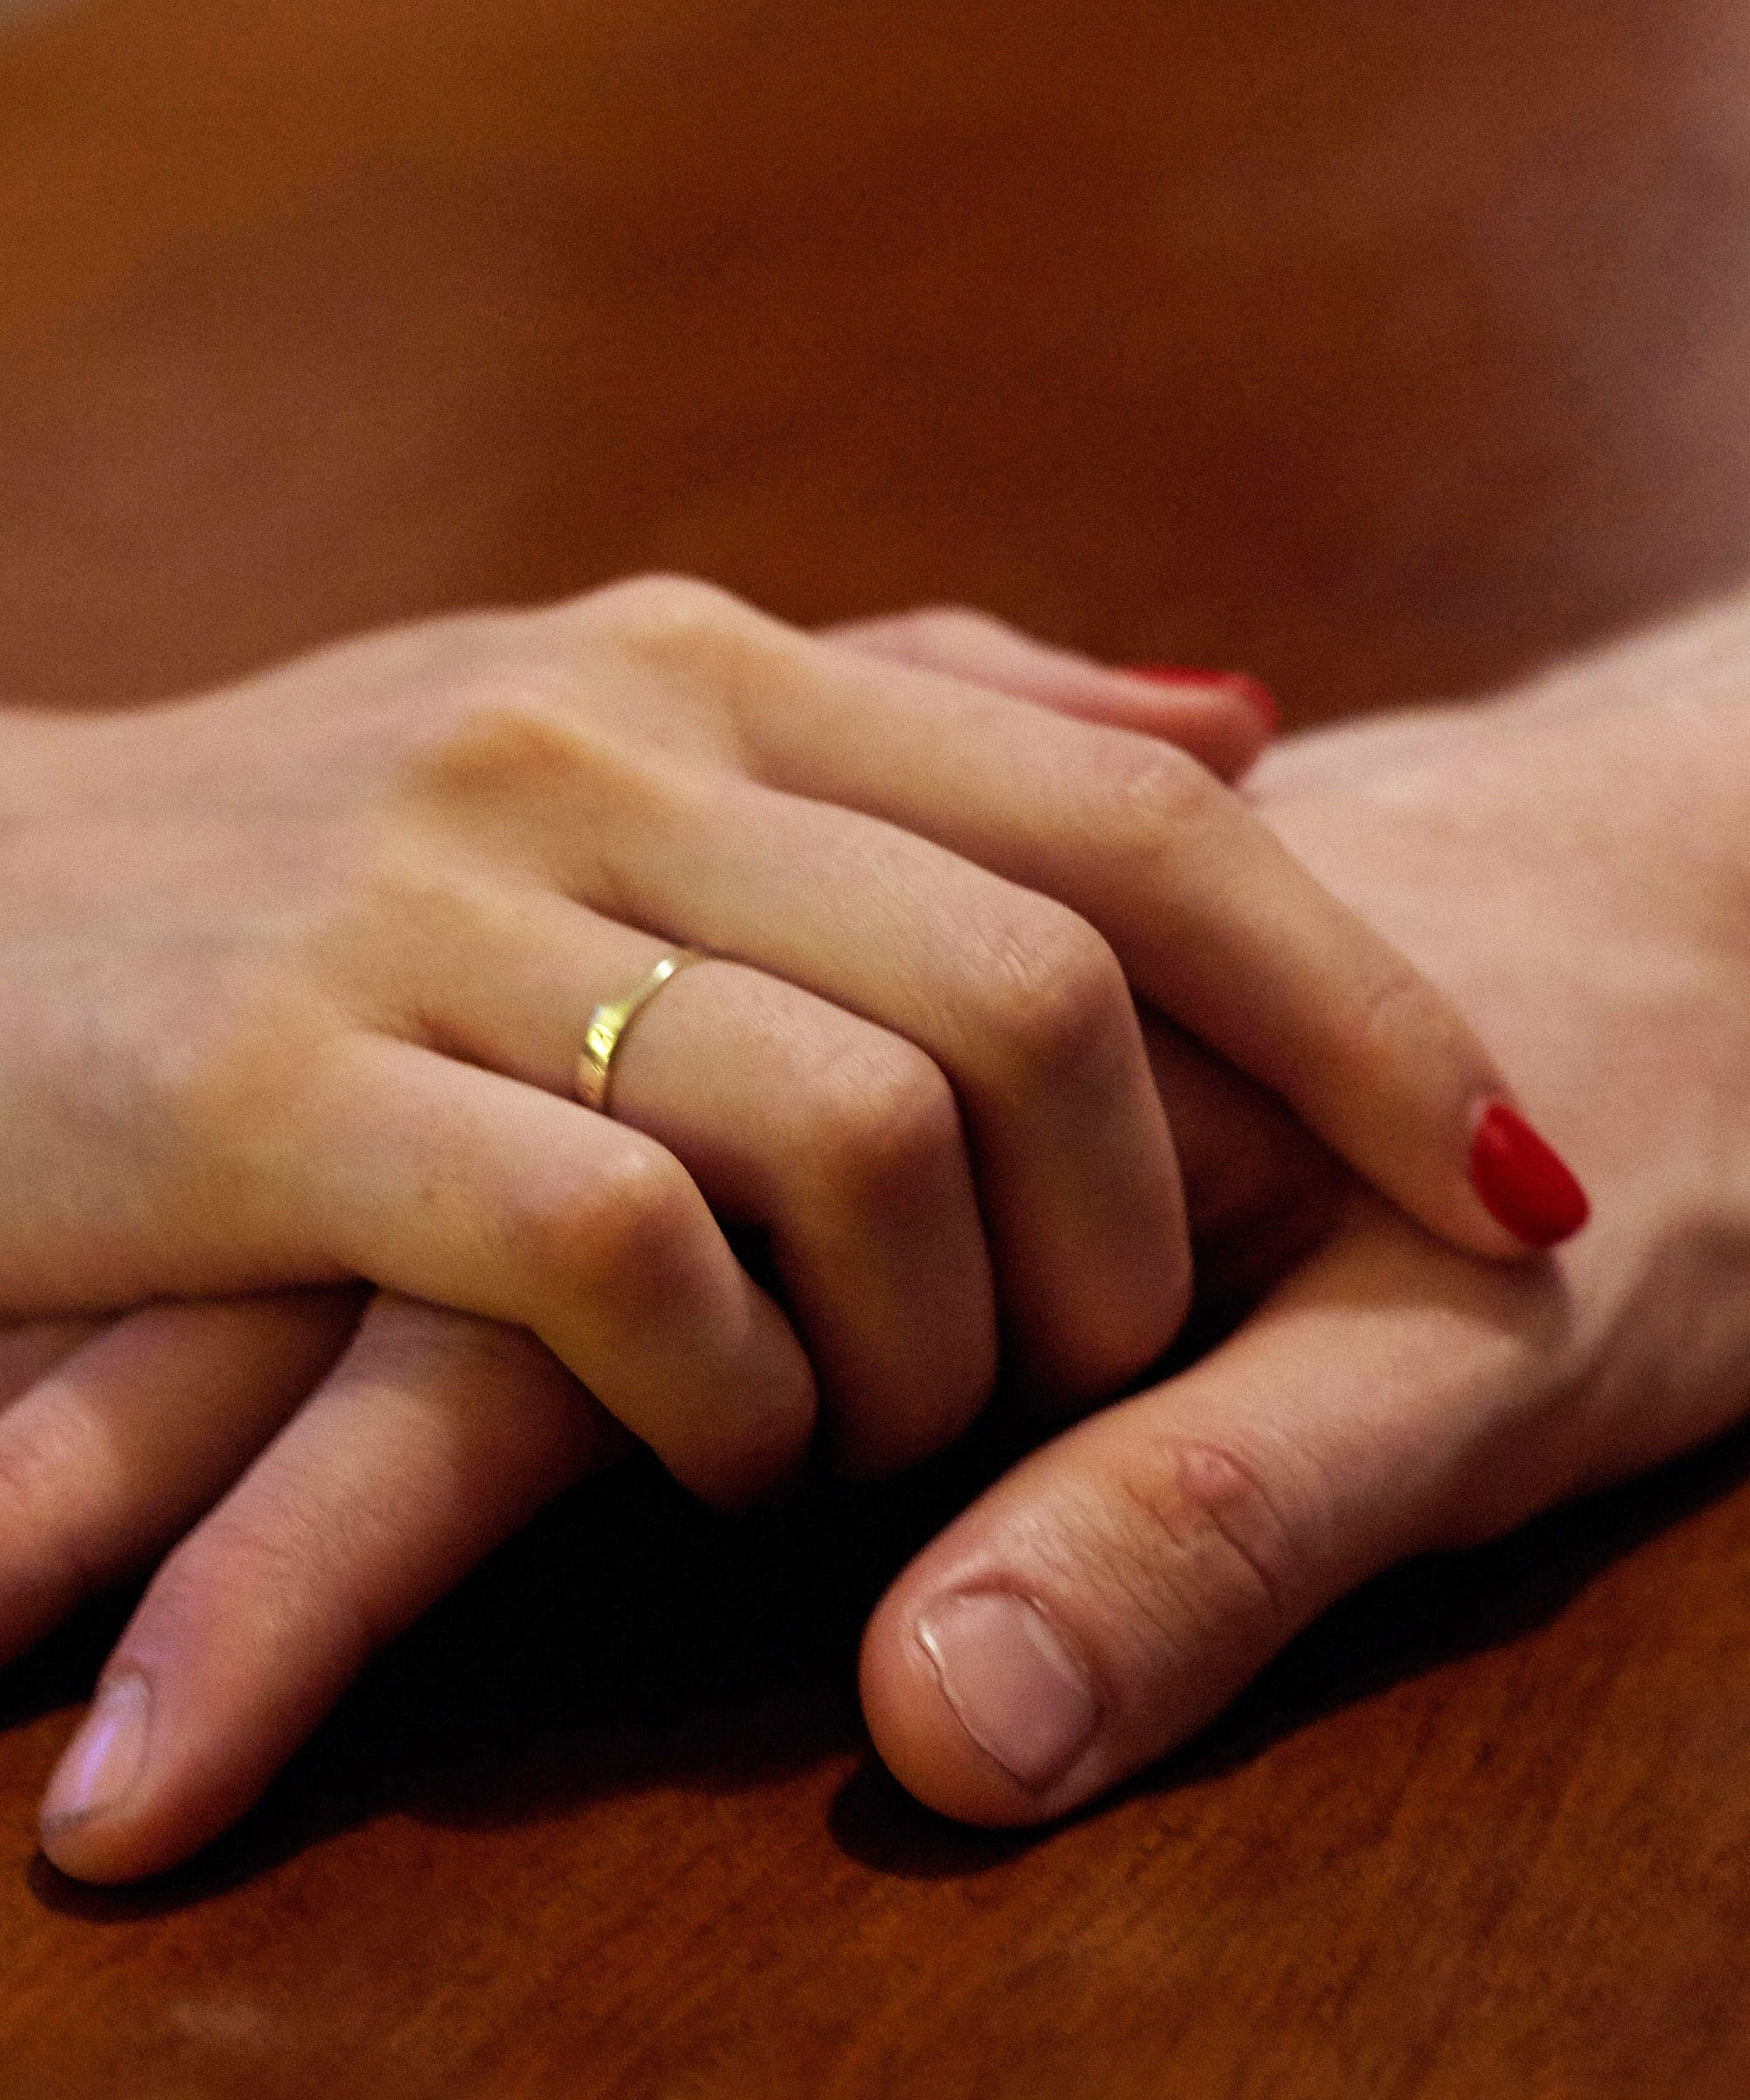 Marriage After Miscarriage, Mental Health Effects